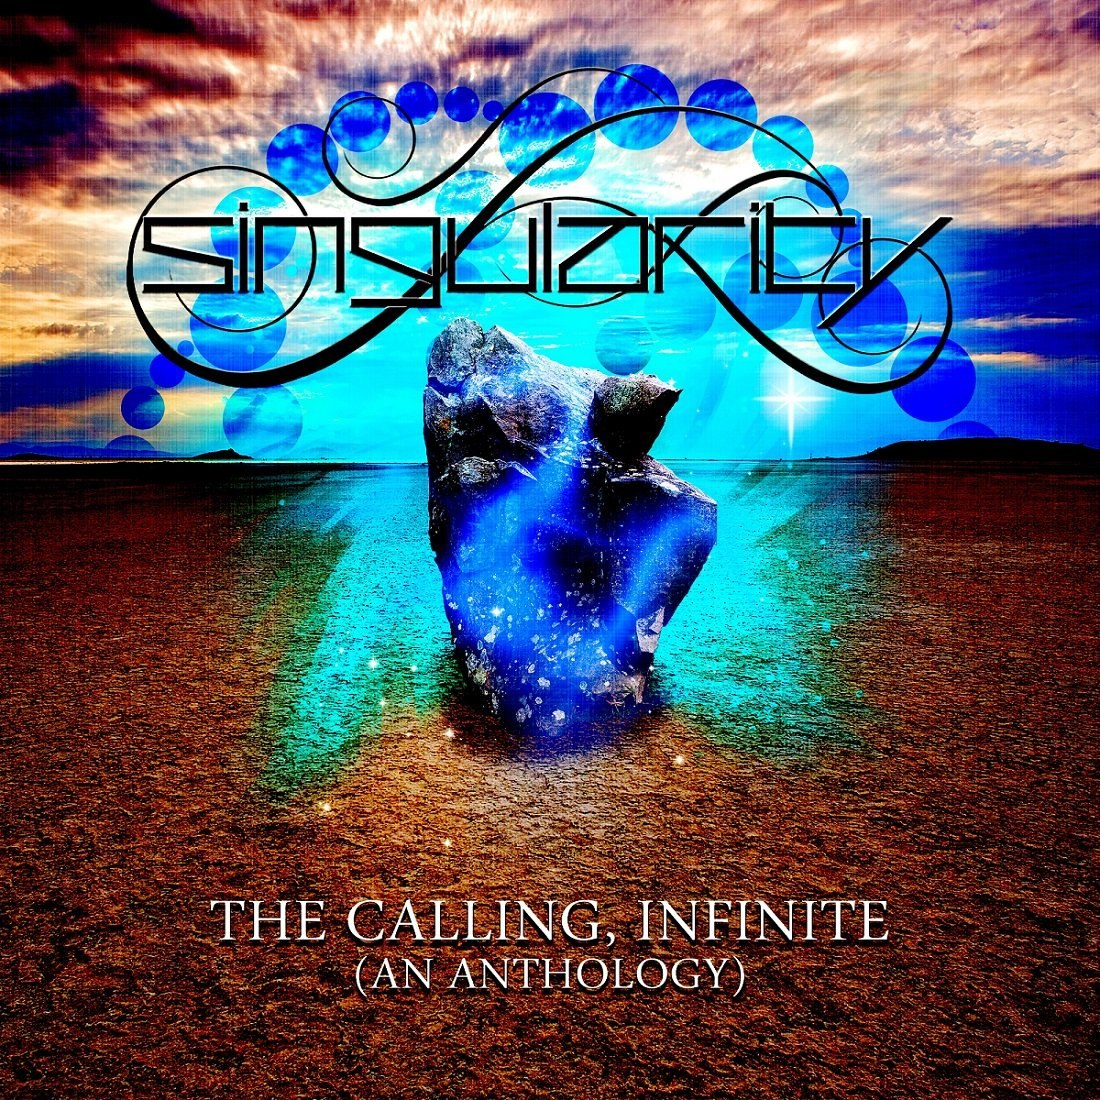 Singularity - The Calling, Infinite (An Anthology) (2013)